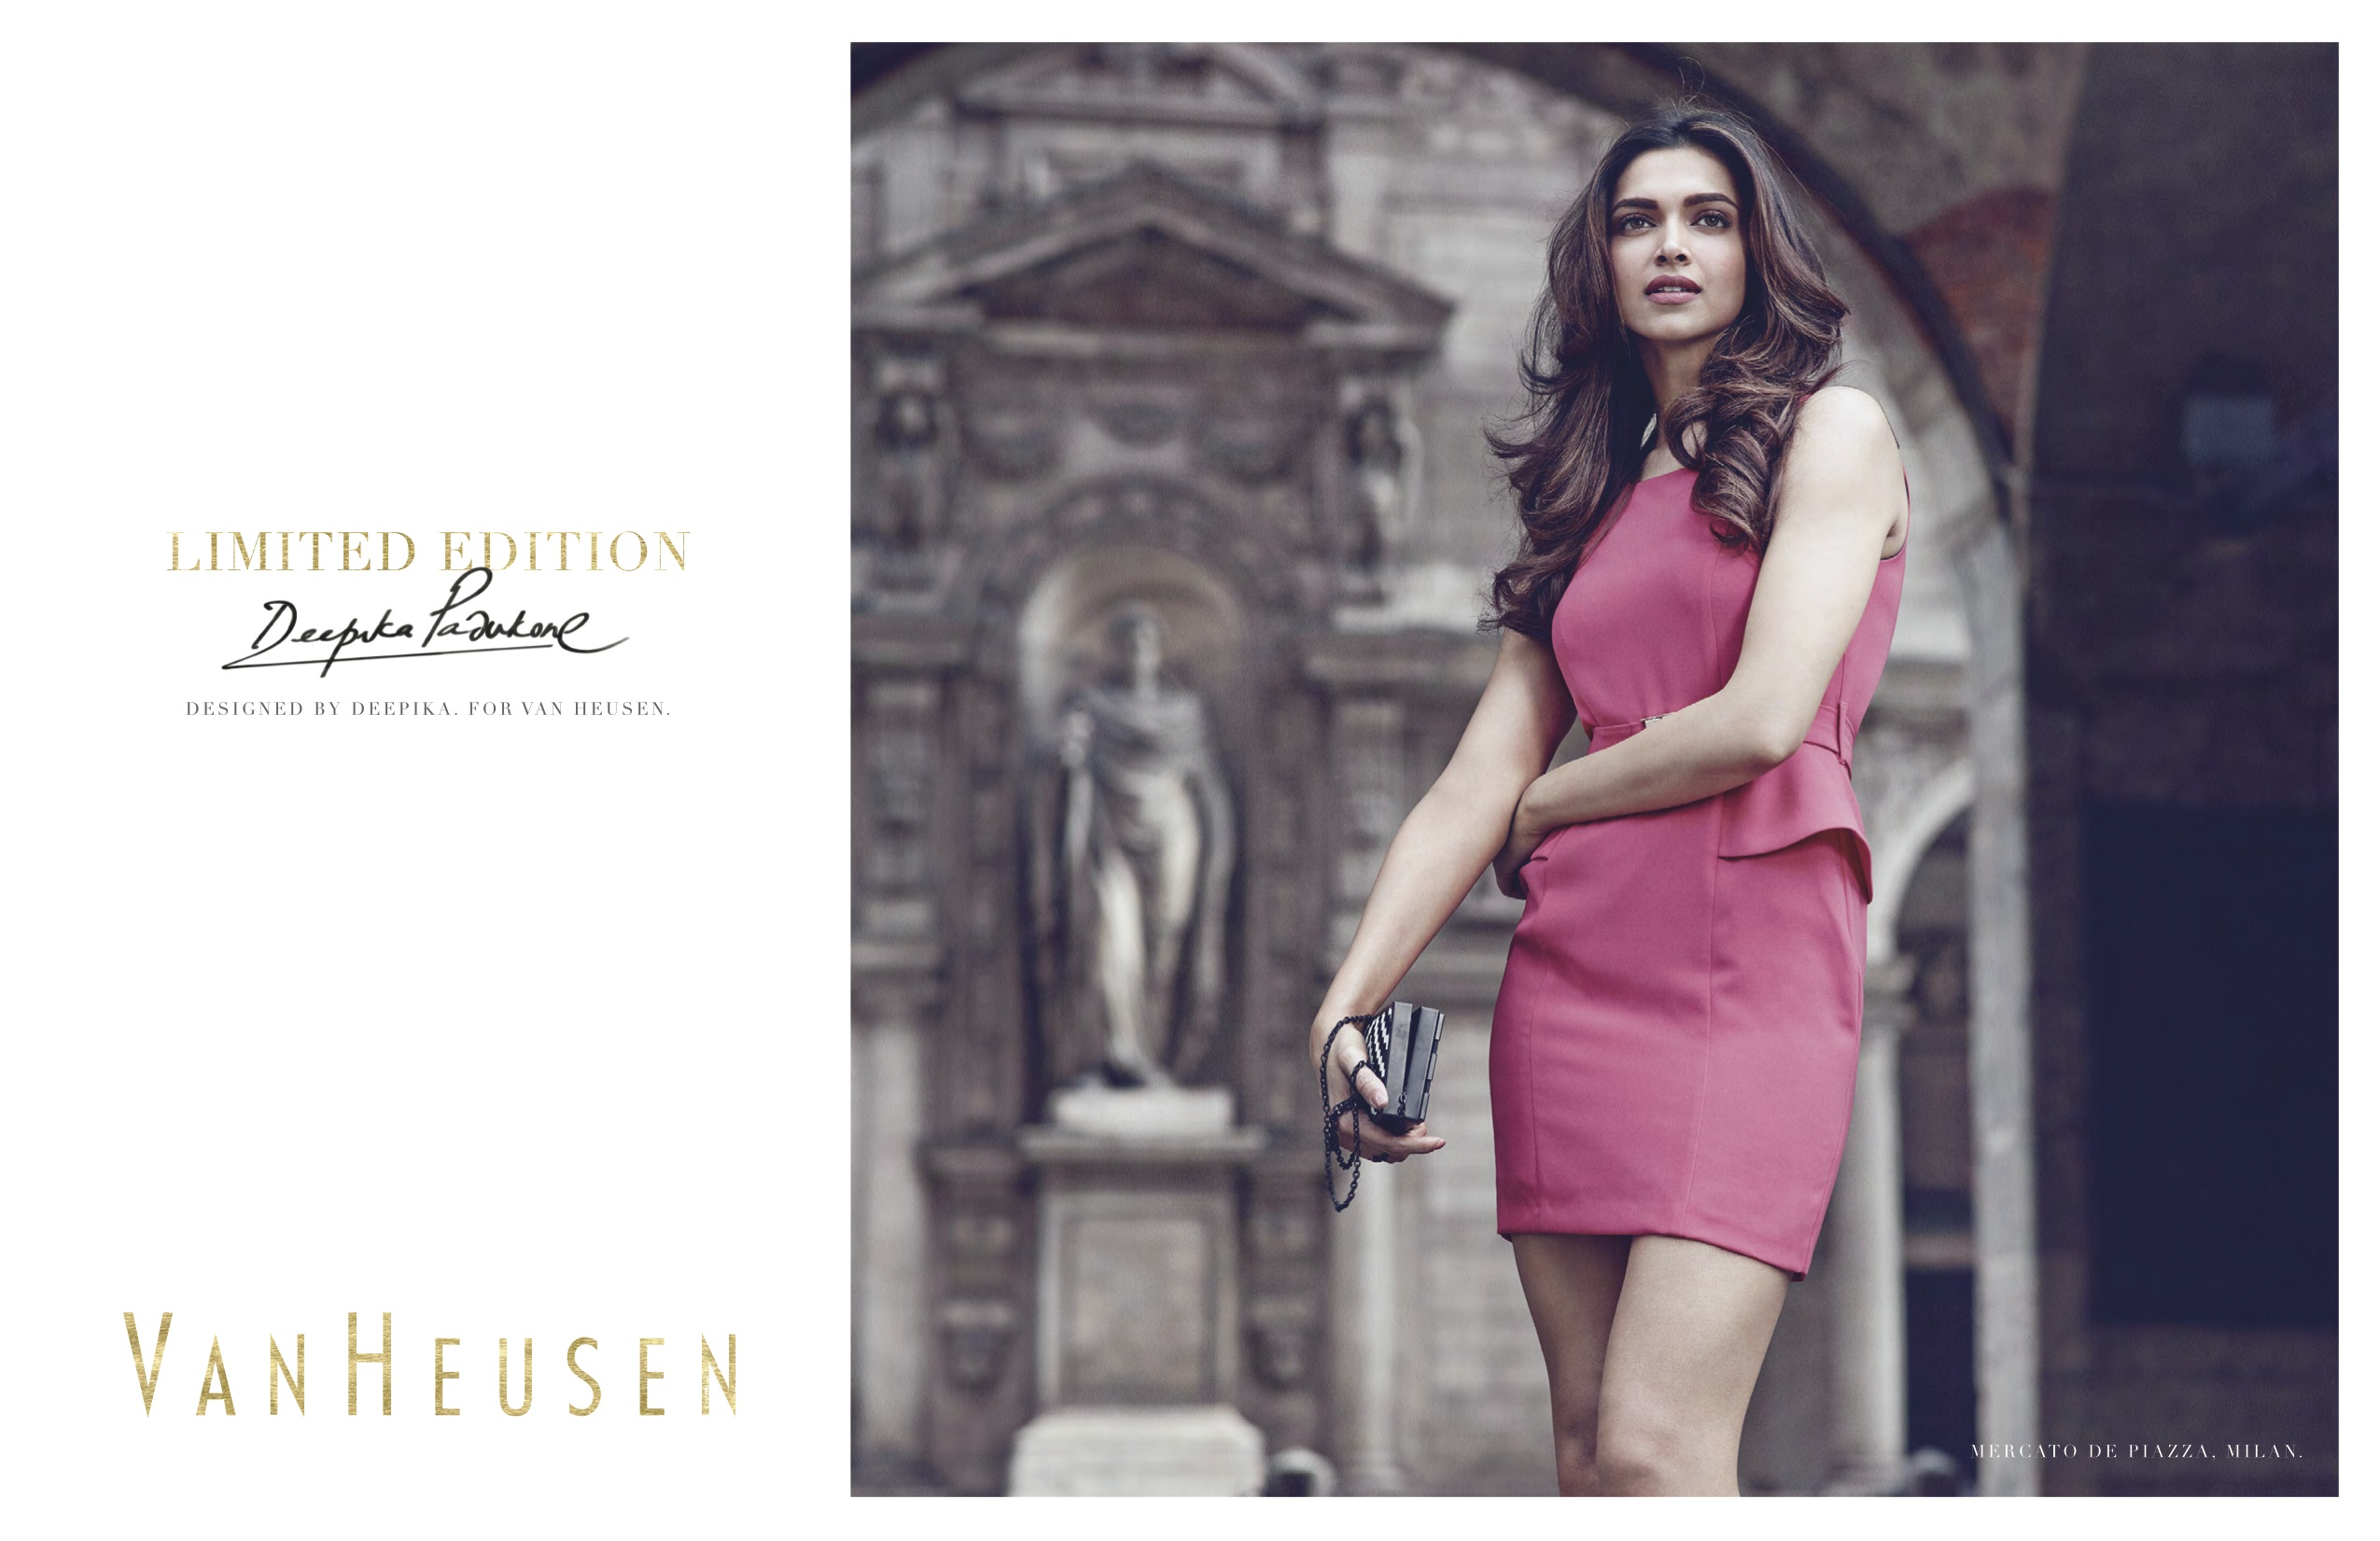 VanHeusenIndiaFlyngPigsProductionItalyLuleproductionJustinPolkeyPhotoshootingFashionModelDeepikaPadukone_02